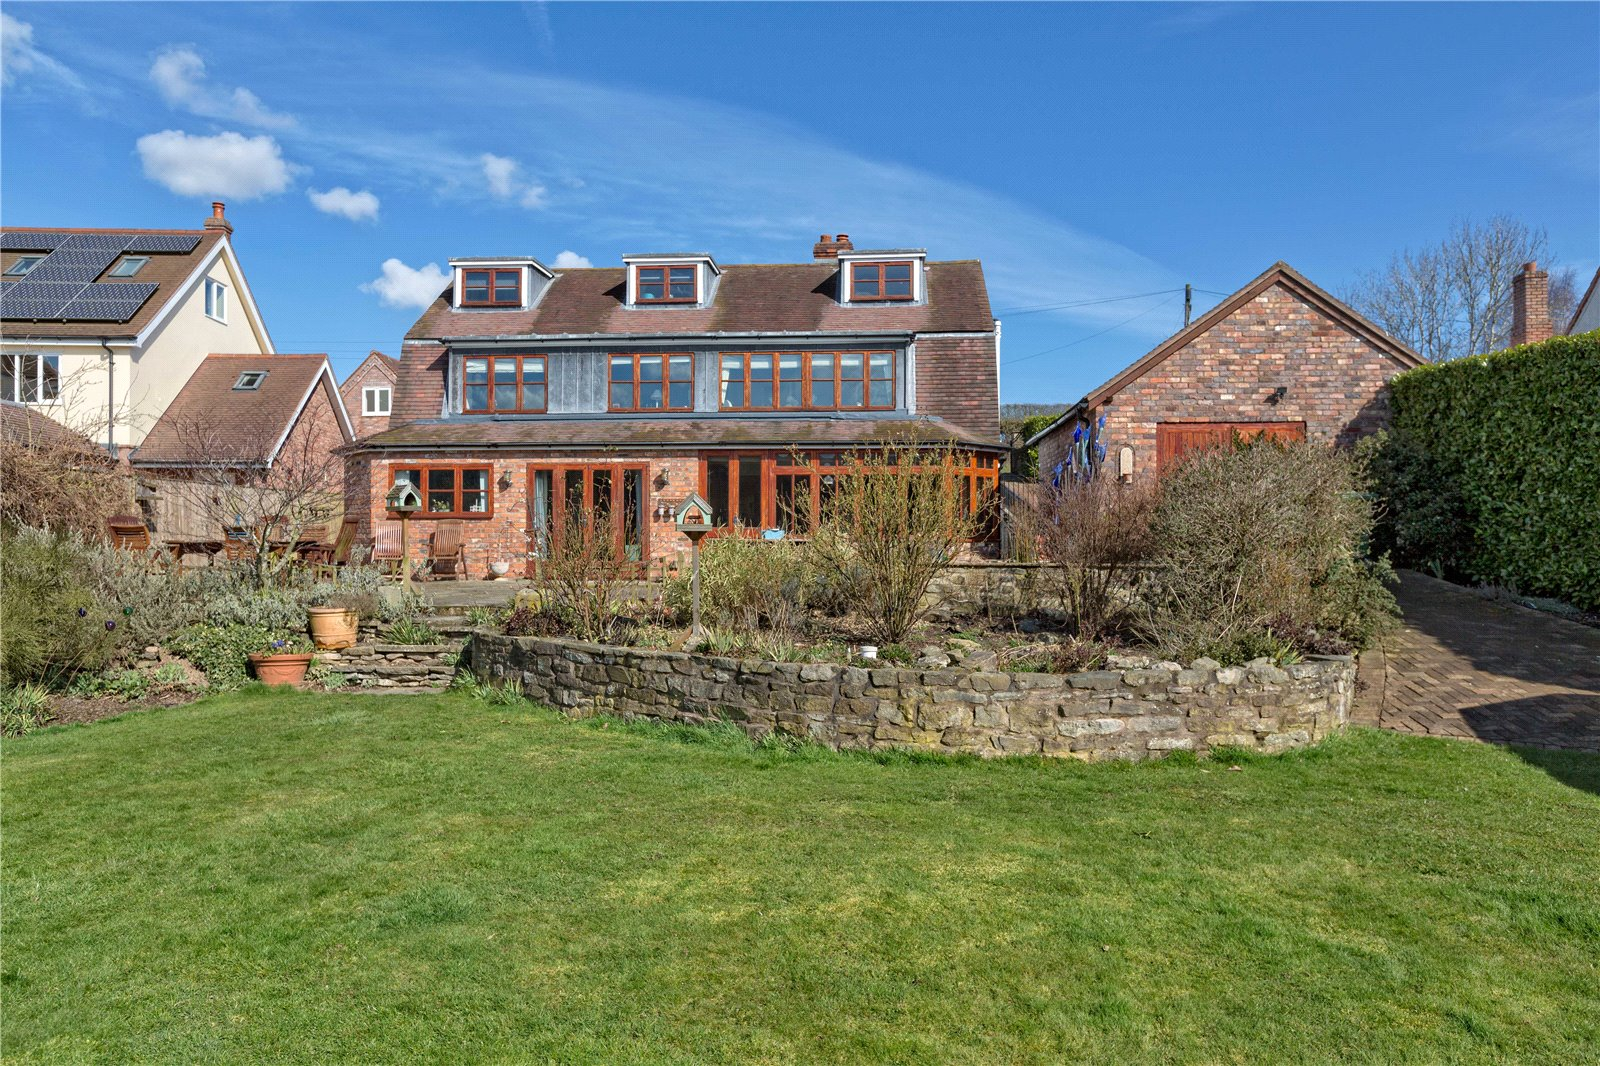 End House, Burway Lane, Ludlow, Shropshire, SY8